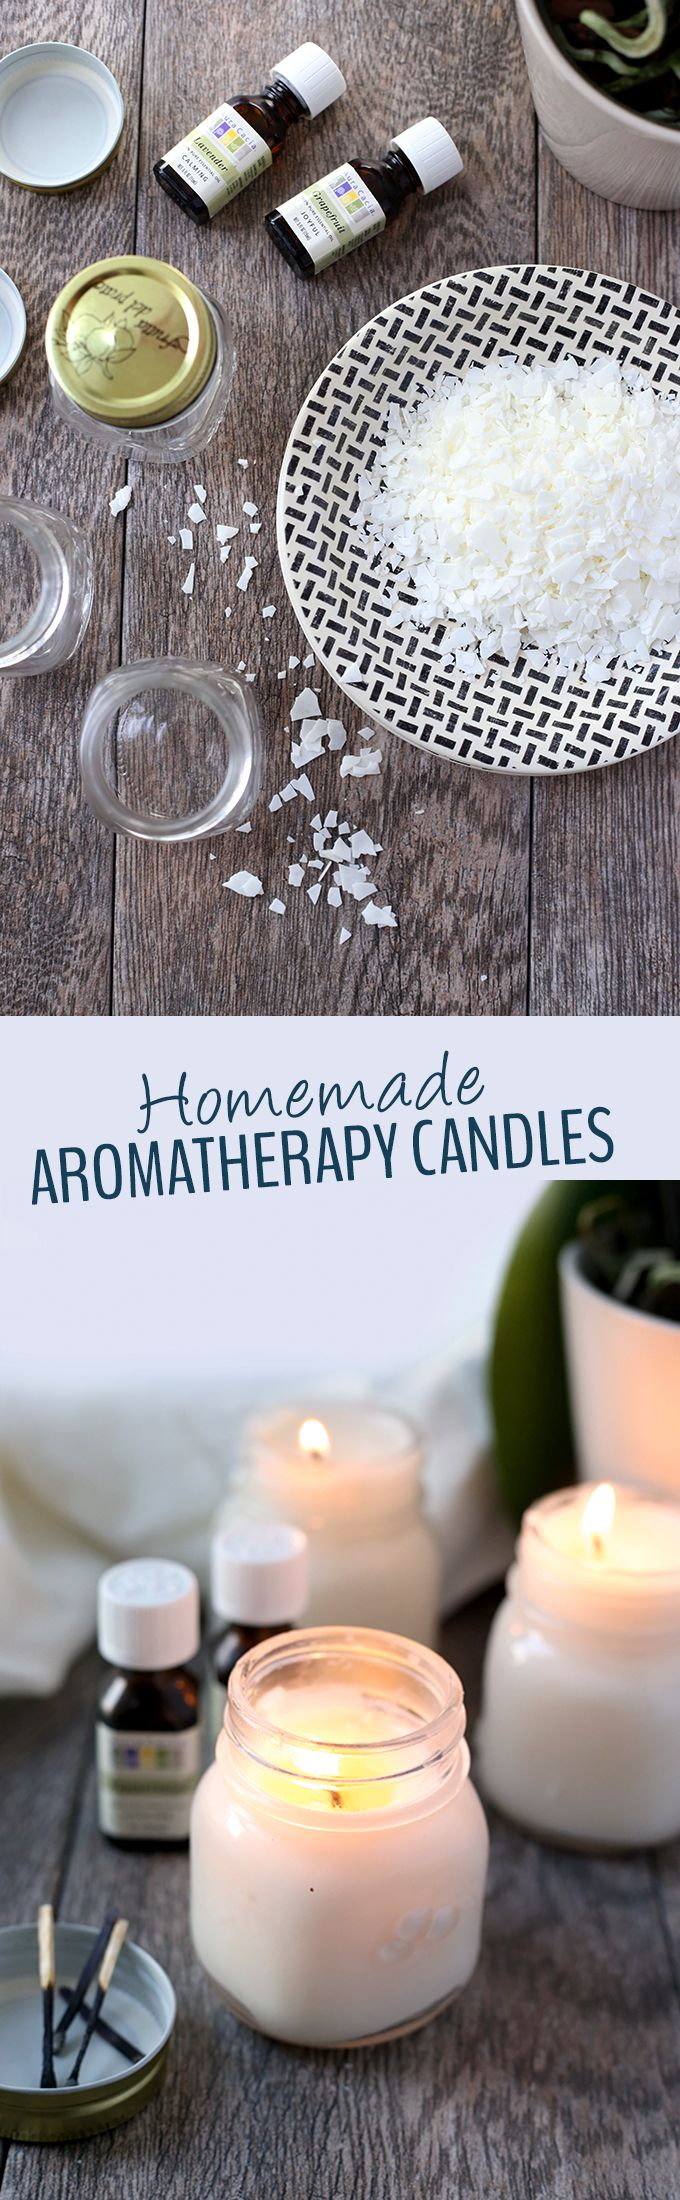 best ideas about aromatherapy recipes on pinterest